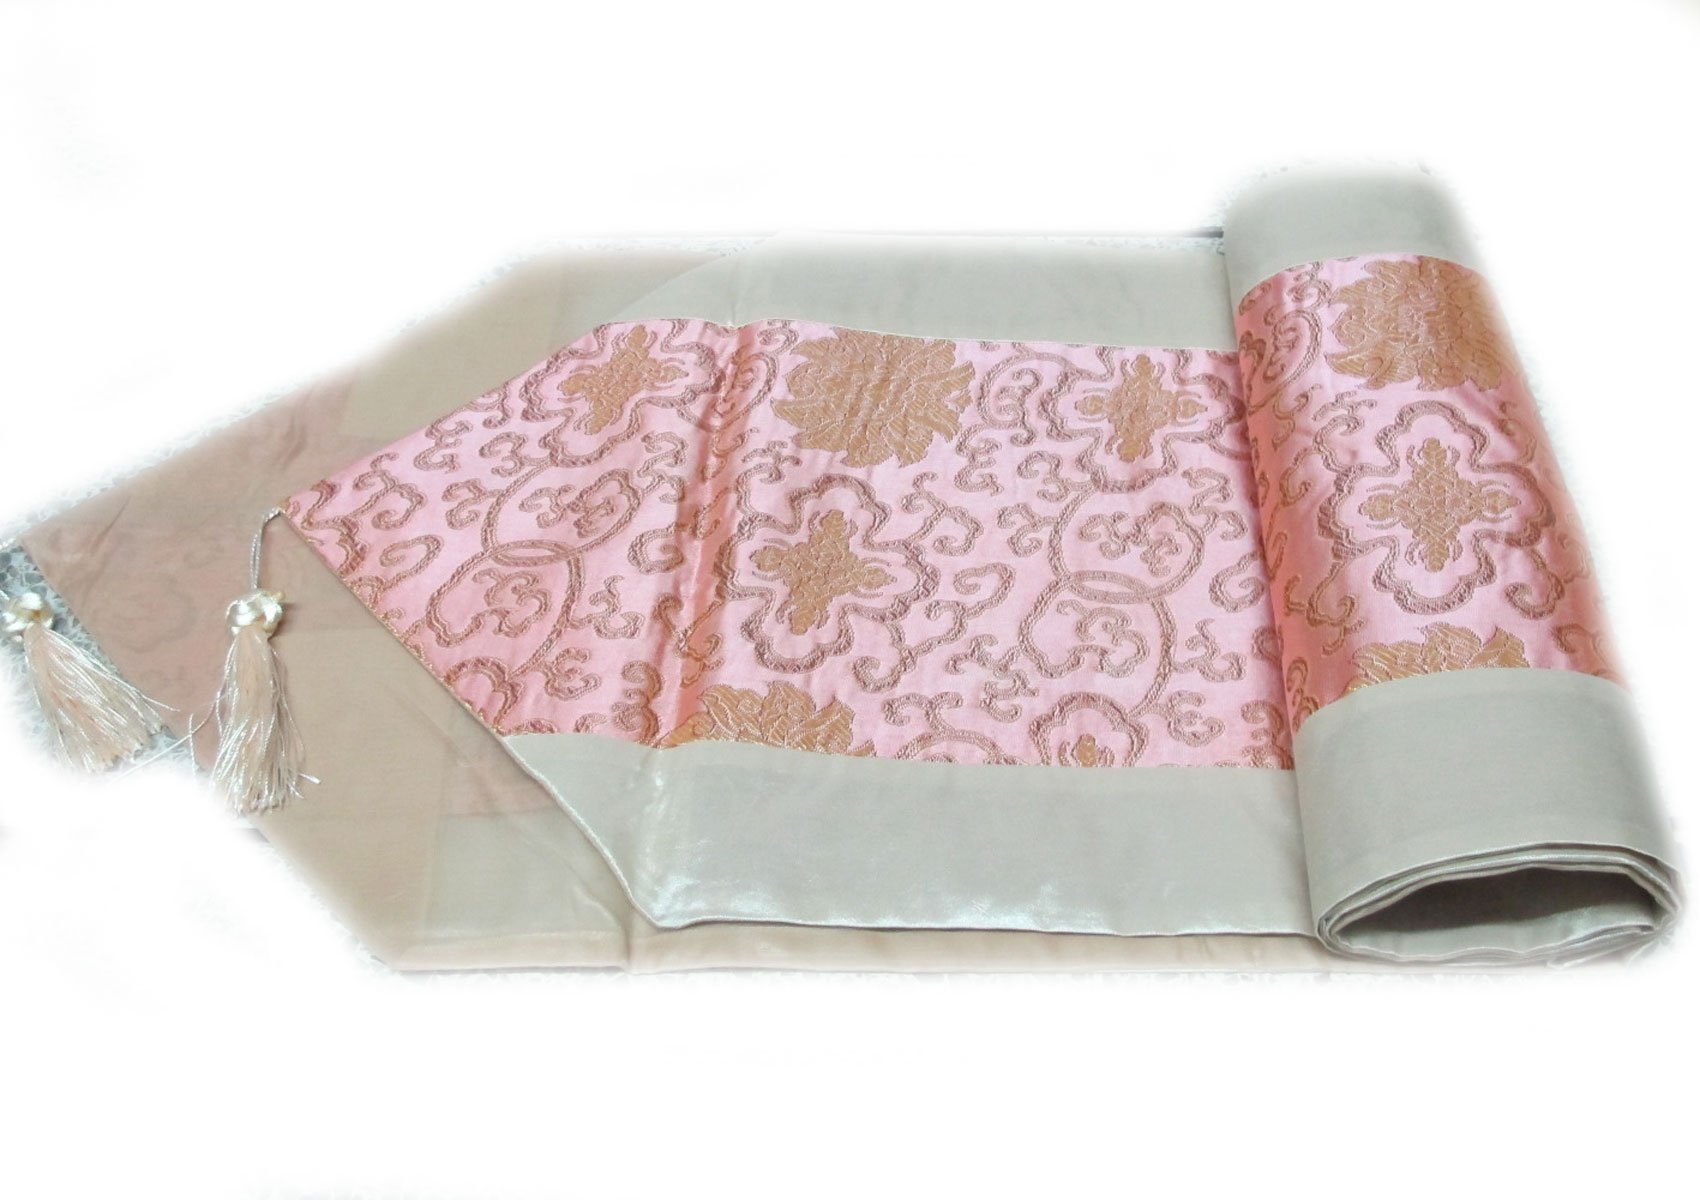 BEAUTIFUL FLOWER THAI SILK TABLE/BED RUNNER WITH COMPLIMENTARY